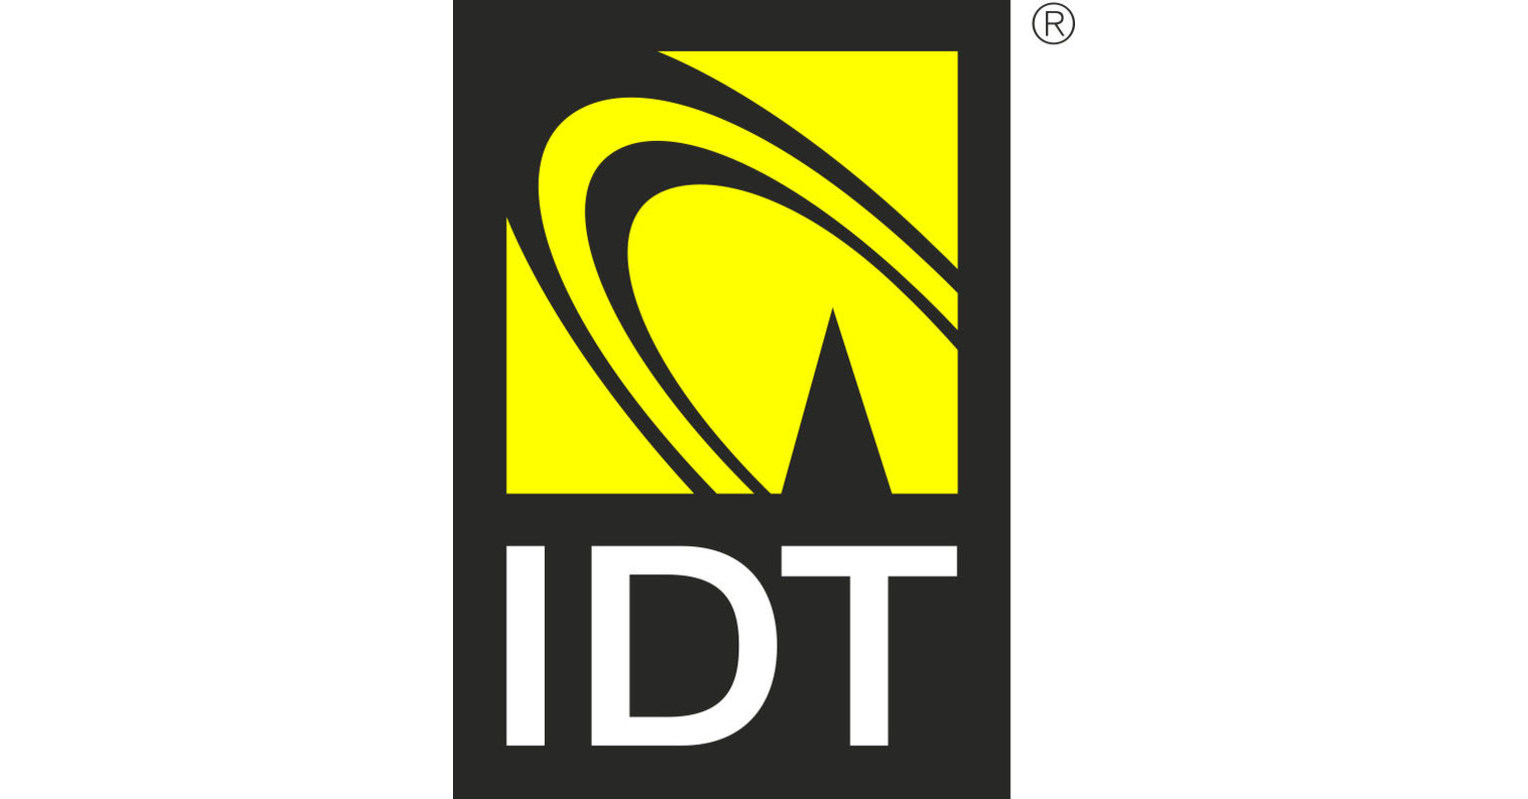 NEWARK, N.J., March 4, 2021 /PRNewswire/ -- IDT Corporation (NYSE: IDT) reported net income per diluted share of $0.51 and Non-GAAP earnings per diluted share* of $0.49 on revenue of $340 million for the second quarter of FY 2021, the three months ended Janua…